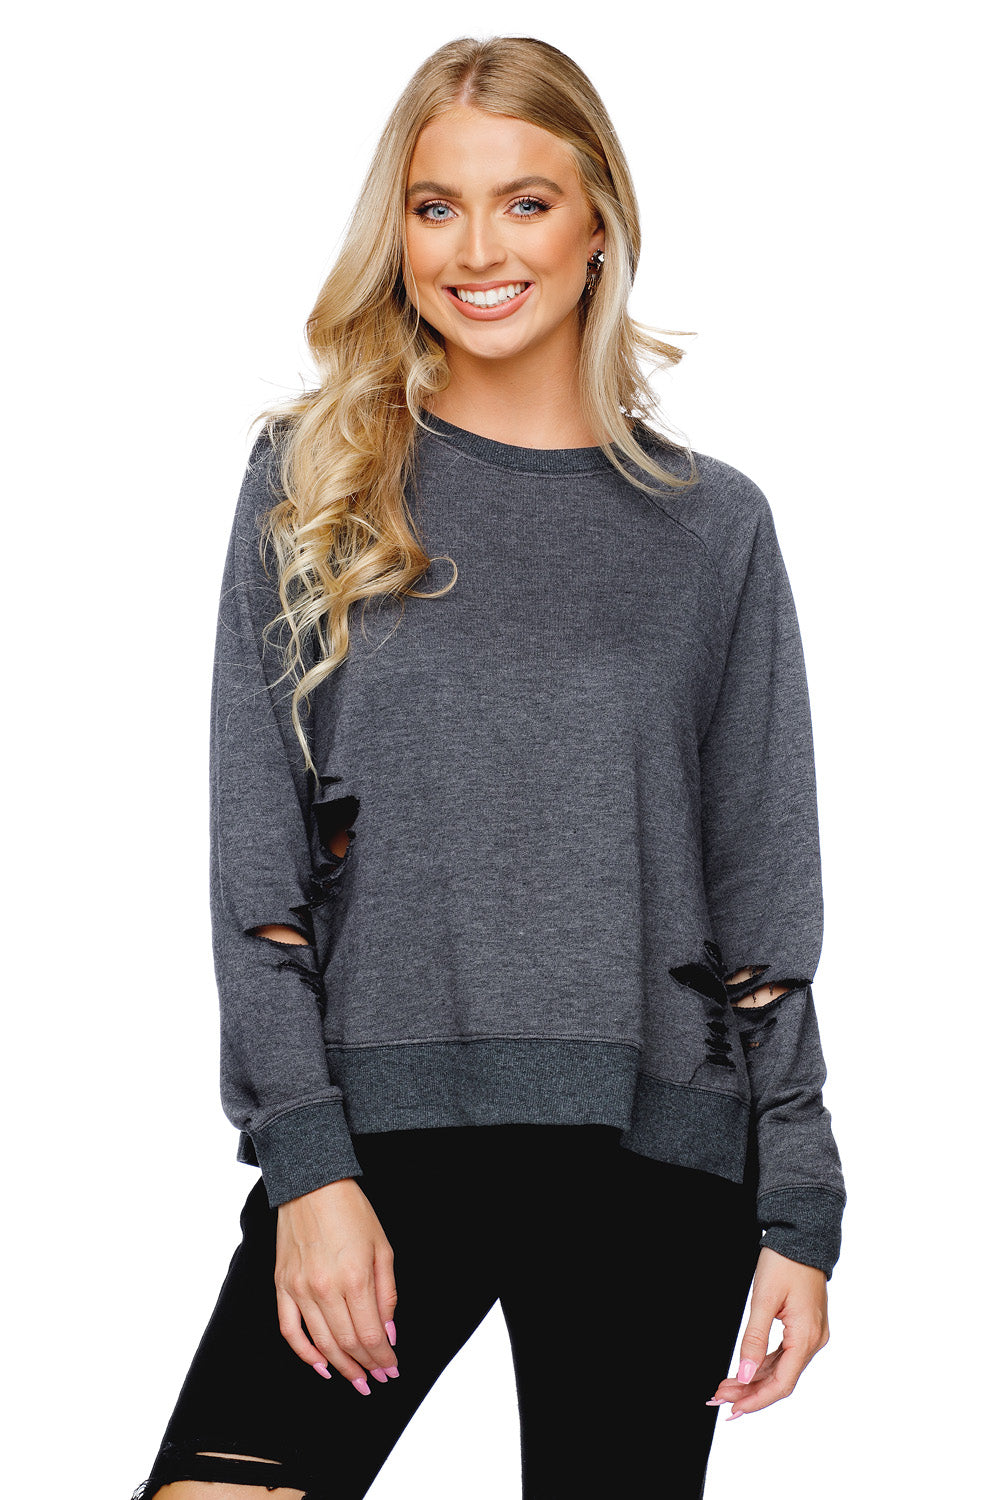 BuddyLove_Denise_Distressed_Long_Sleeve_Lounge_Sweater__Charcoal__S_Grey